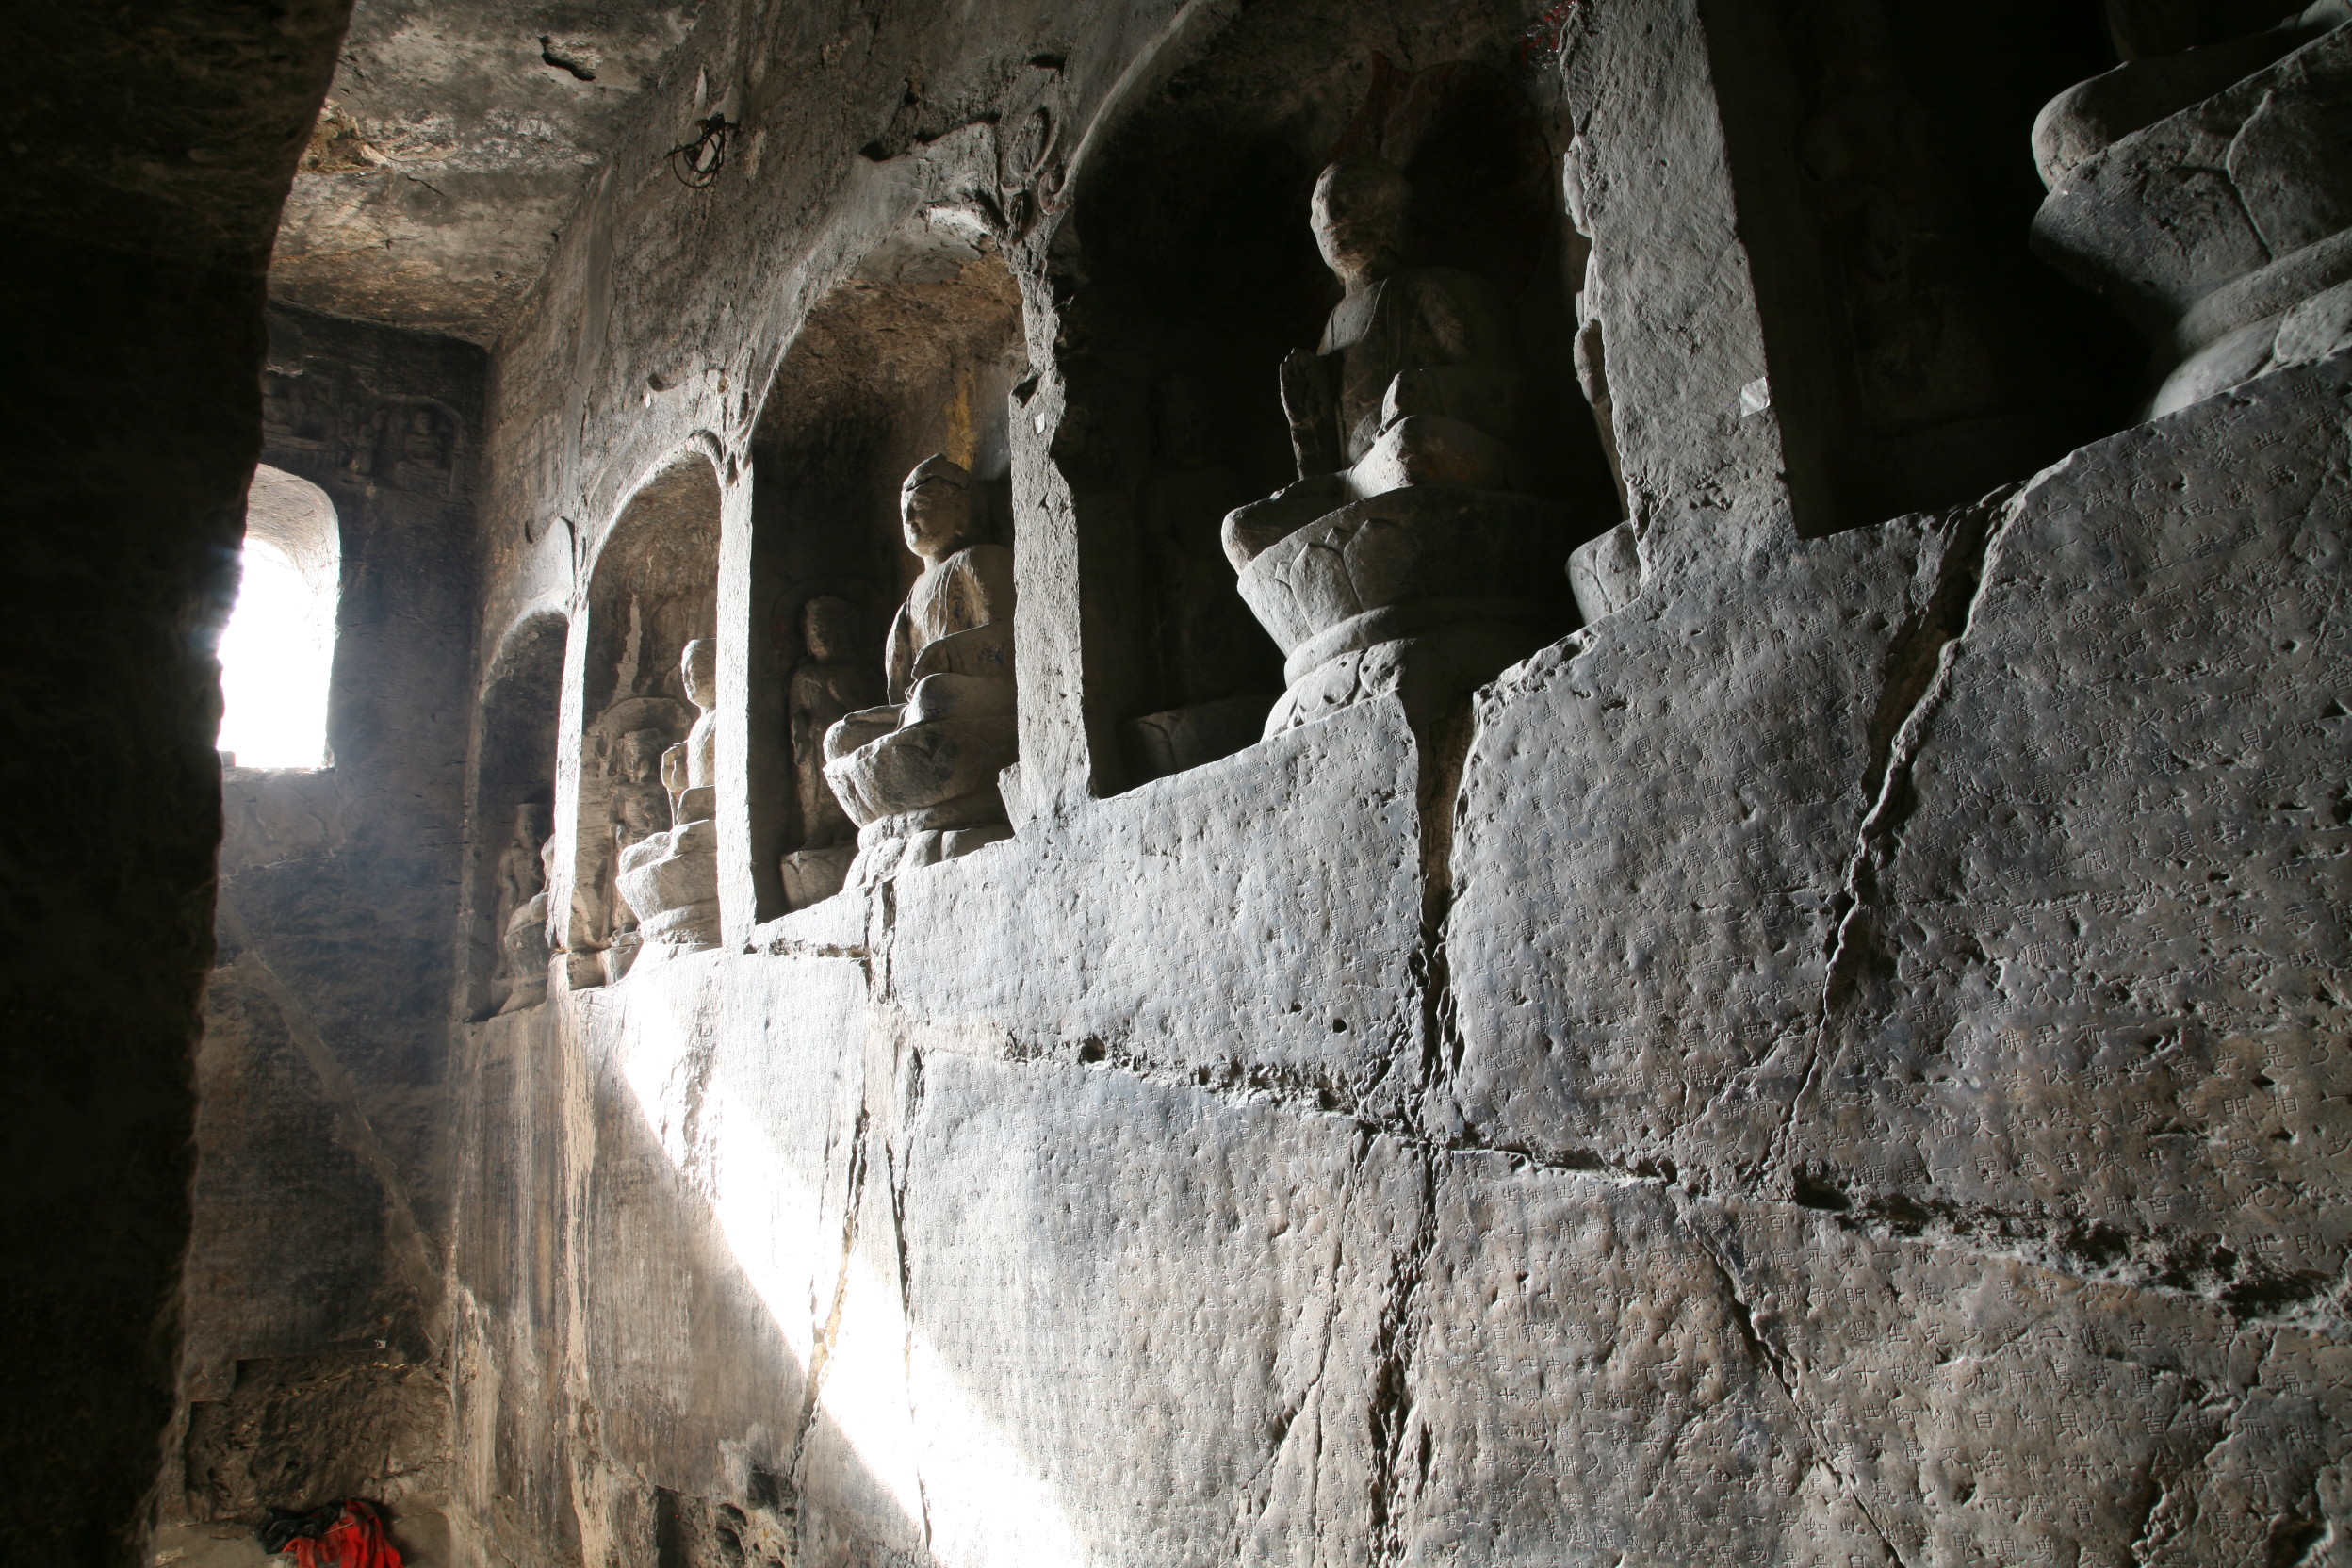 Cave 1 left wall, niches and engraved Avatamsaka sutra